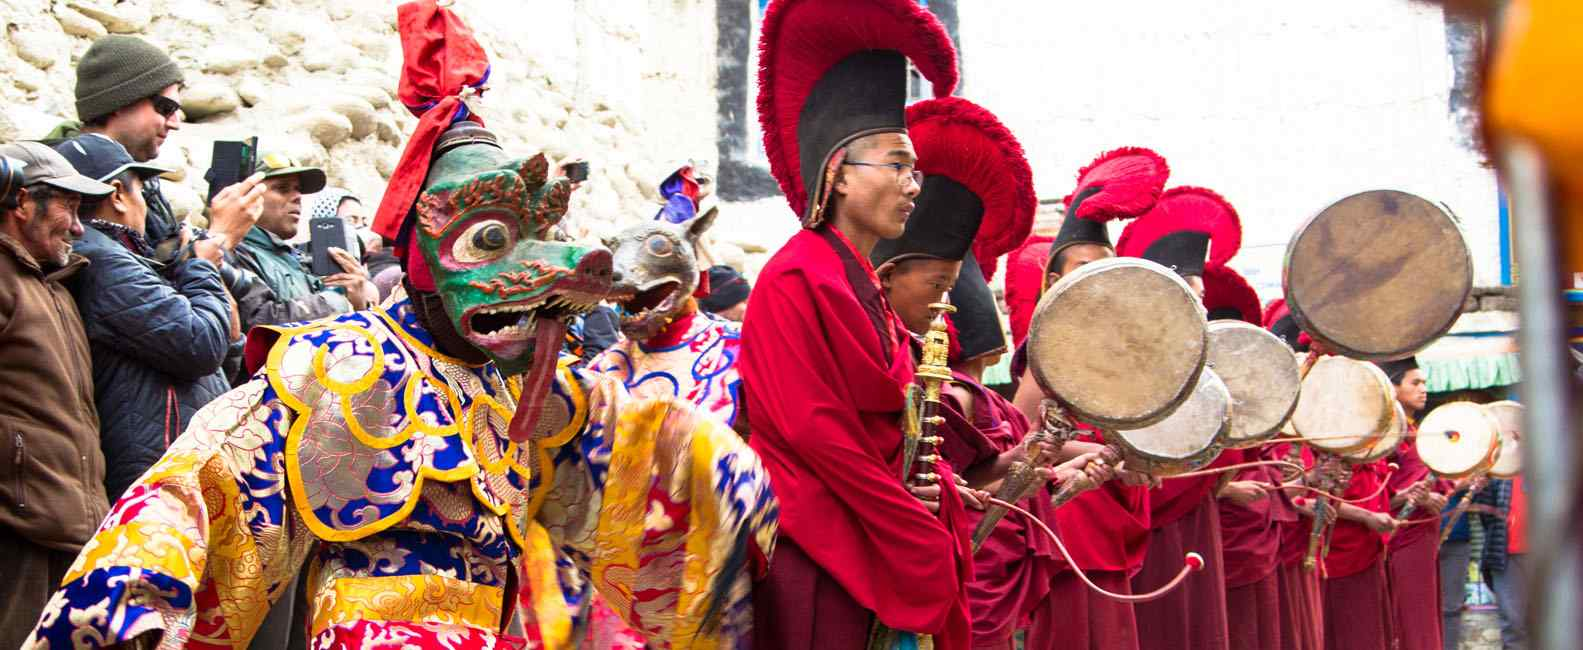 Upper Mustang Overland Tour with Tiji Festival in Nepal